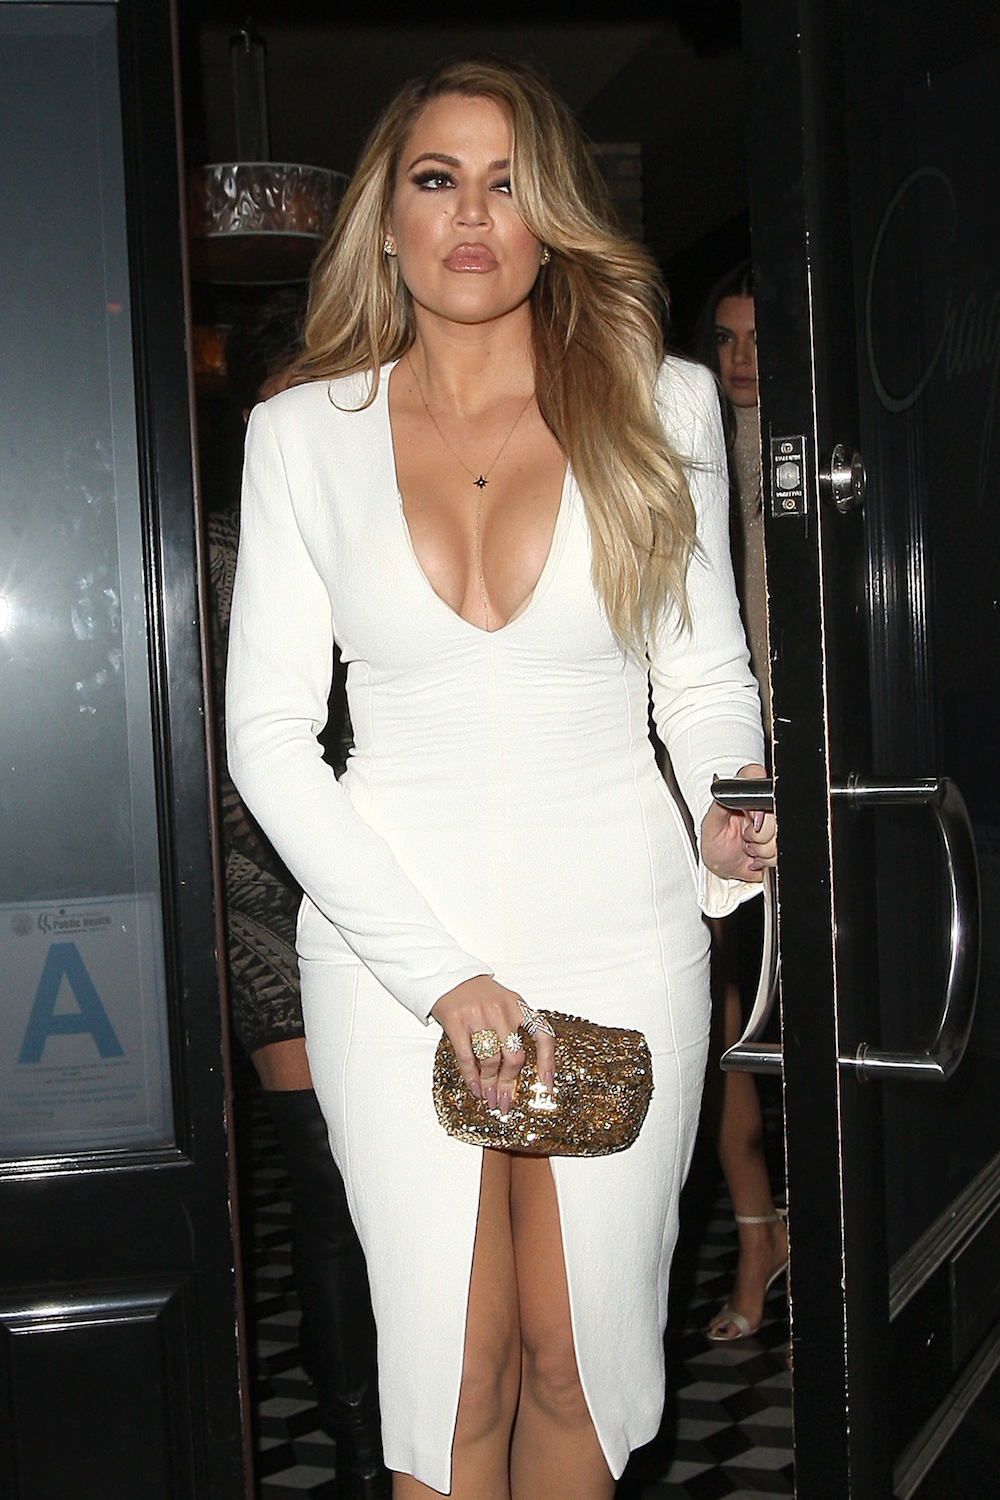 Tits Khloe Kardashian nude (44 foto and video), Tits, Fappening, Selfie, swimsuit 2018